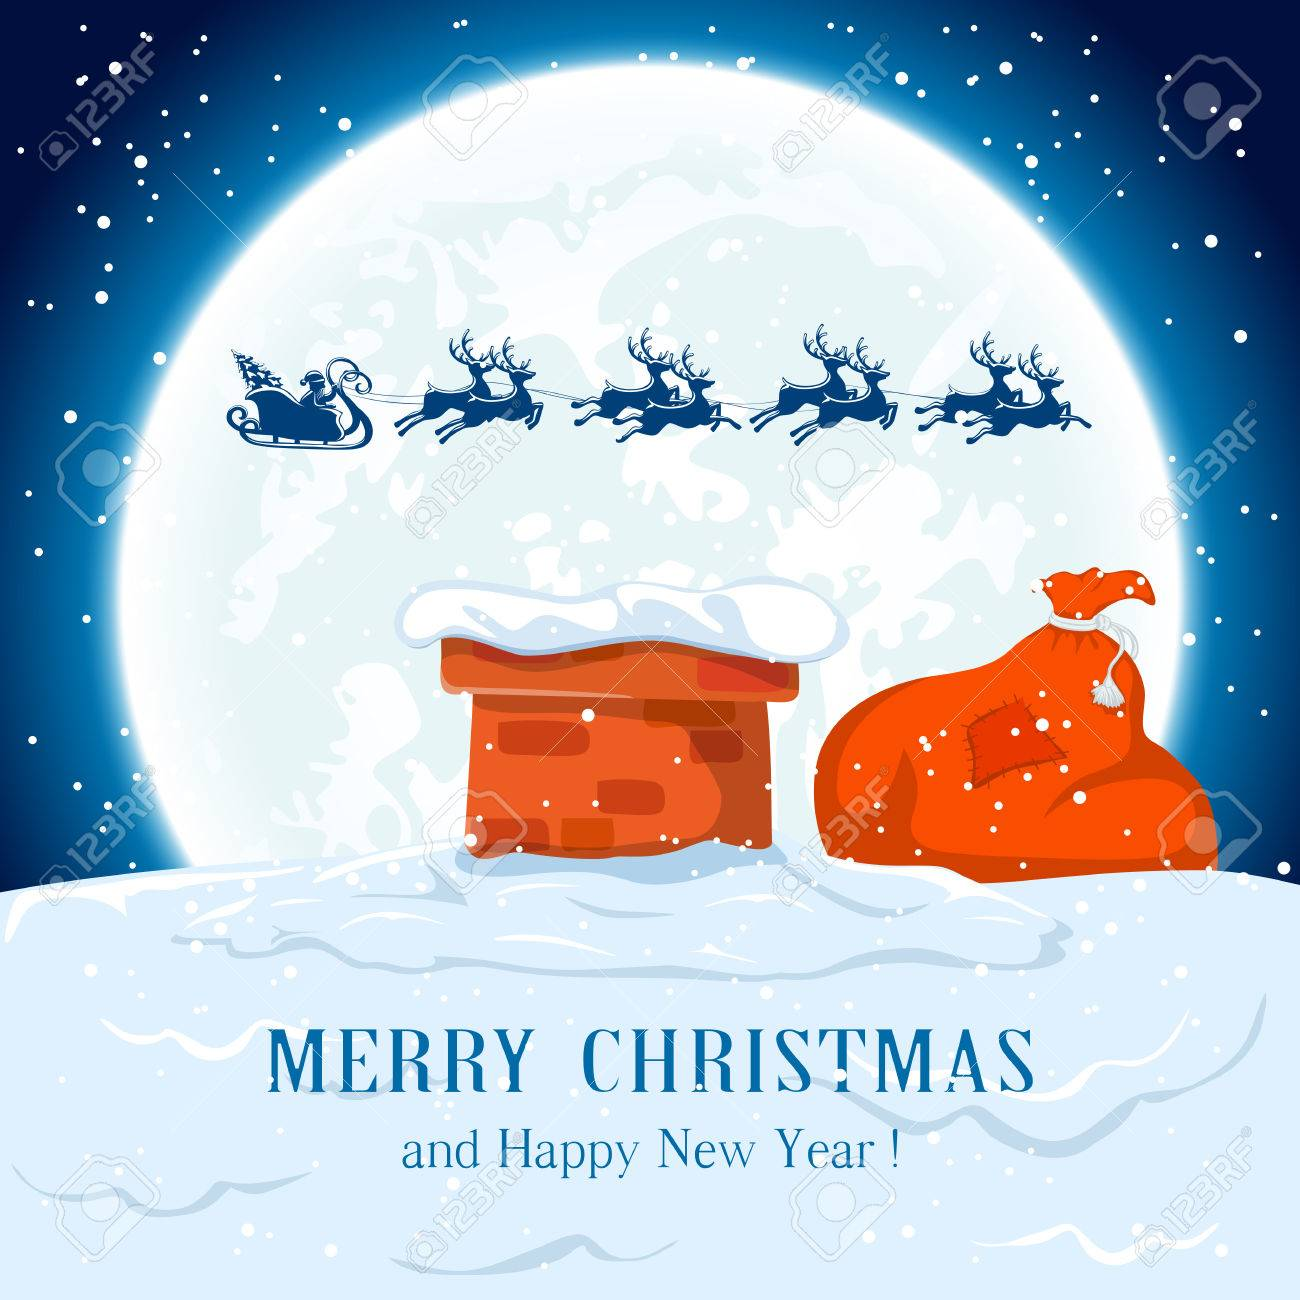 Santa in a sleigh flies over the roof, illustration. - 48793113